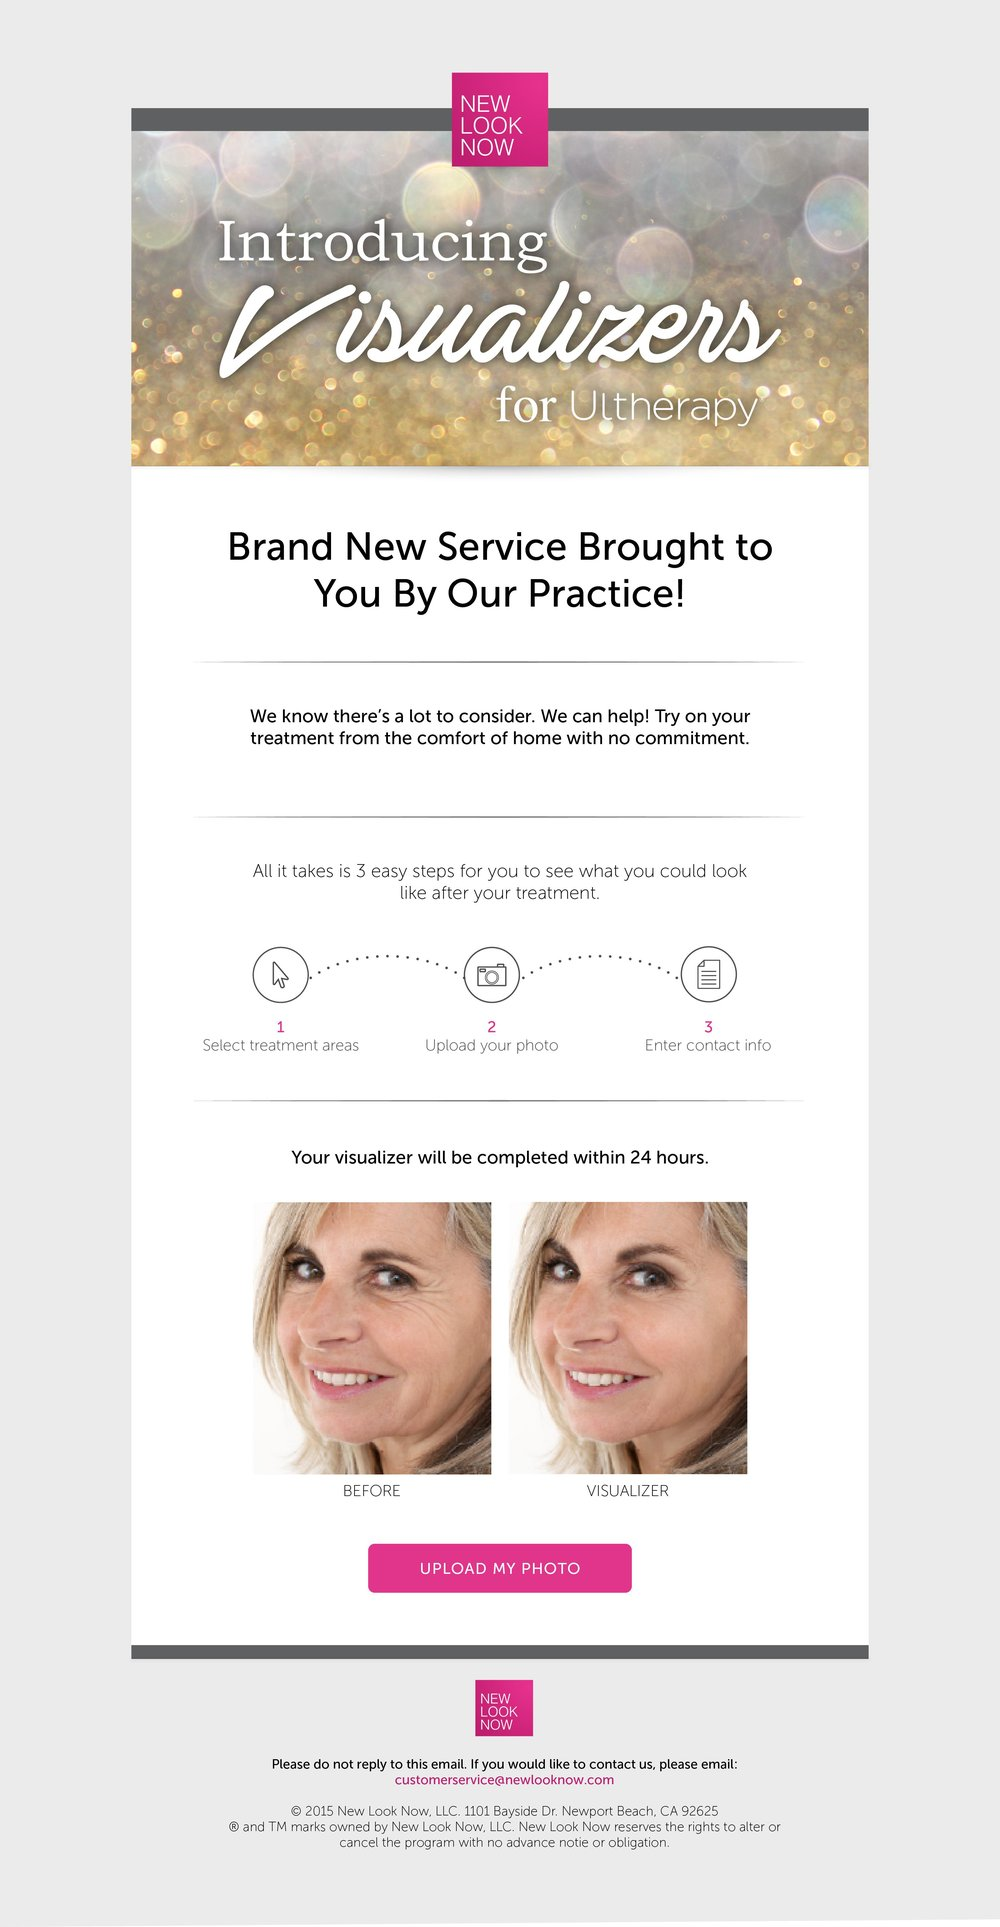 Copy of Introducing Visualizers Email (Ultherapy)